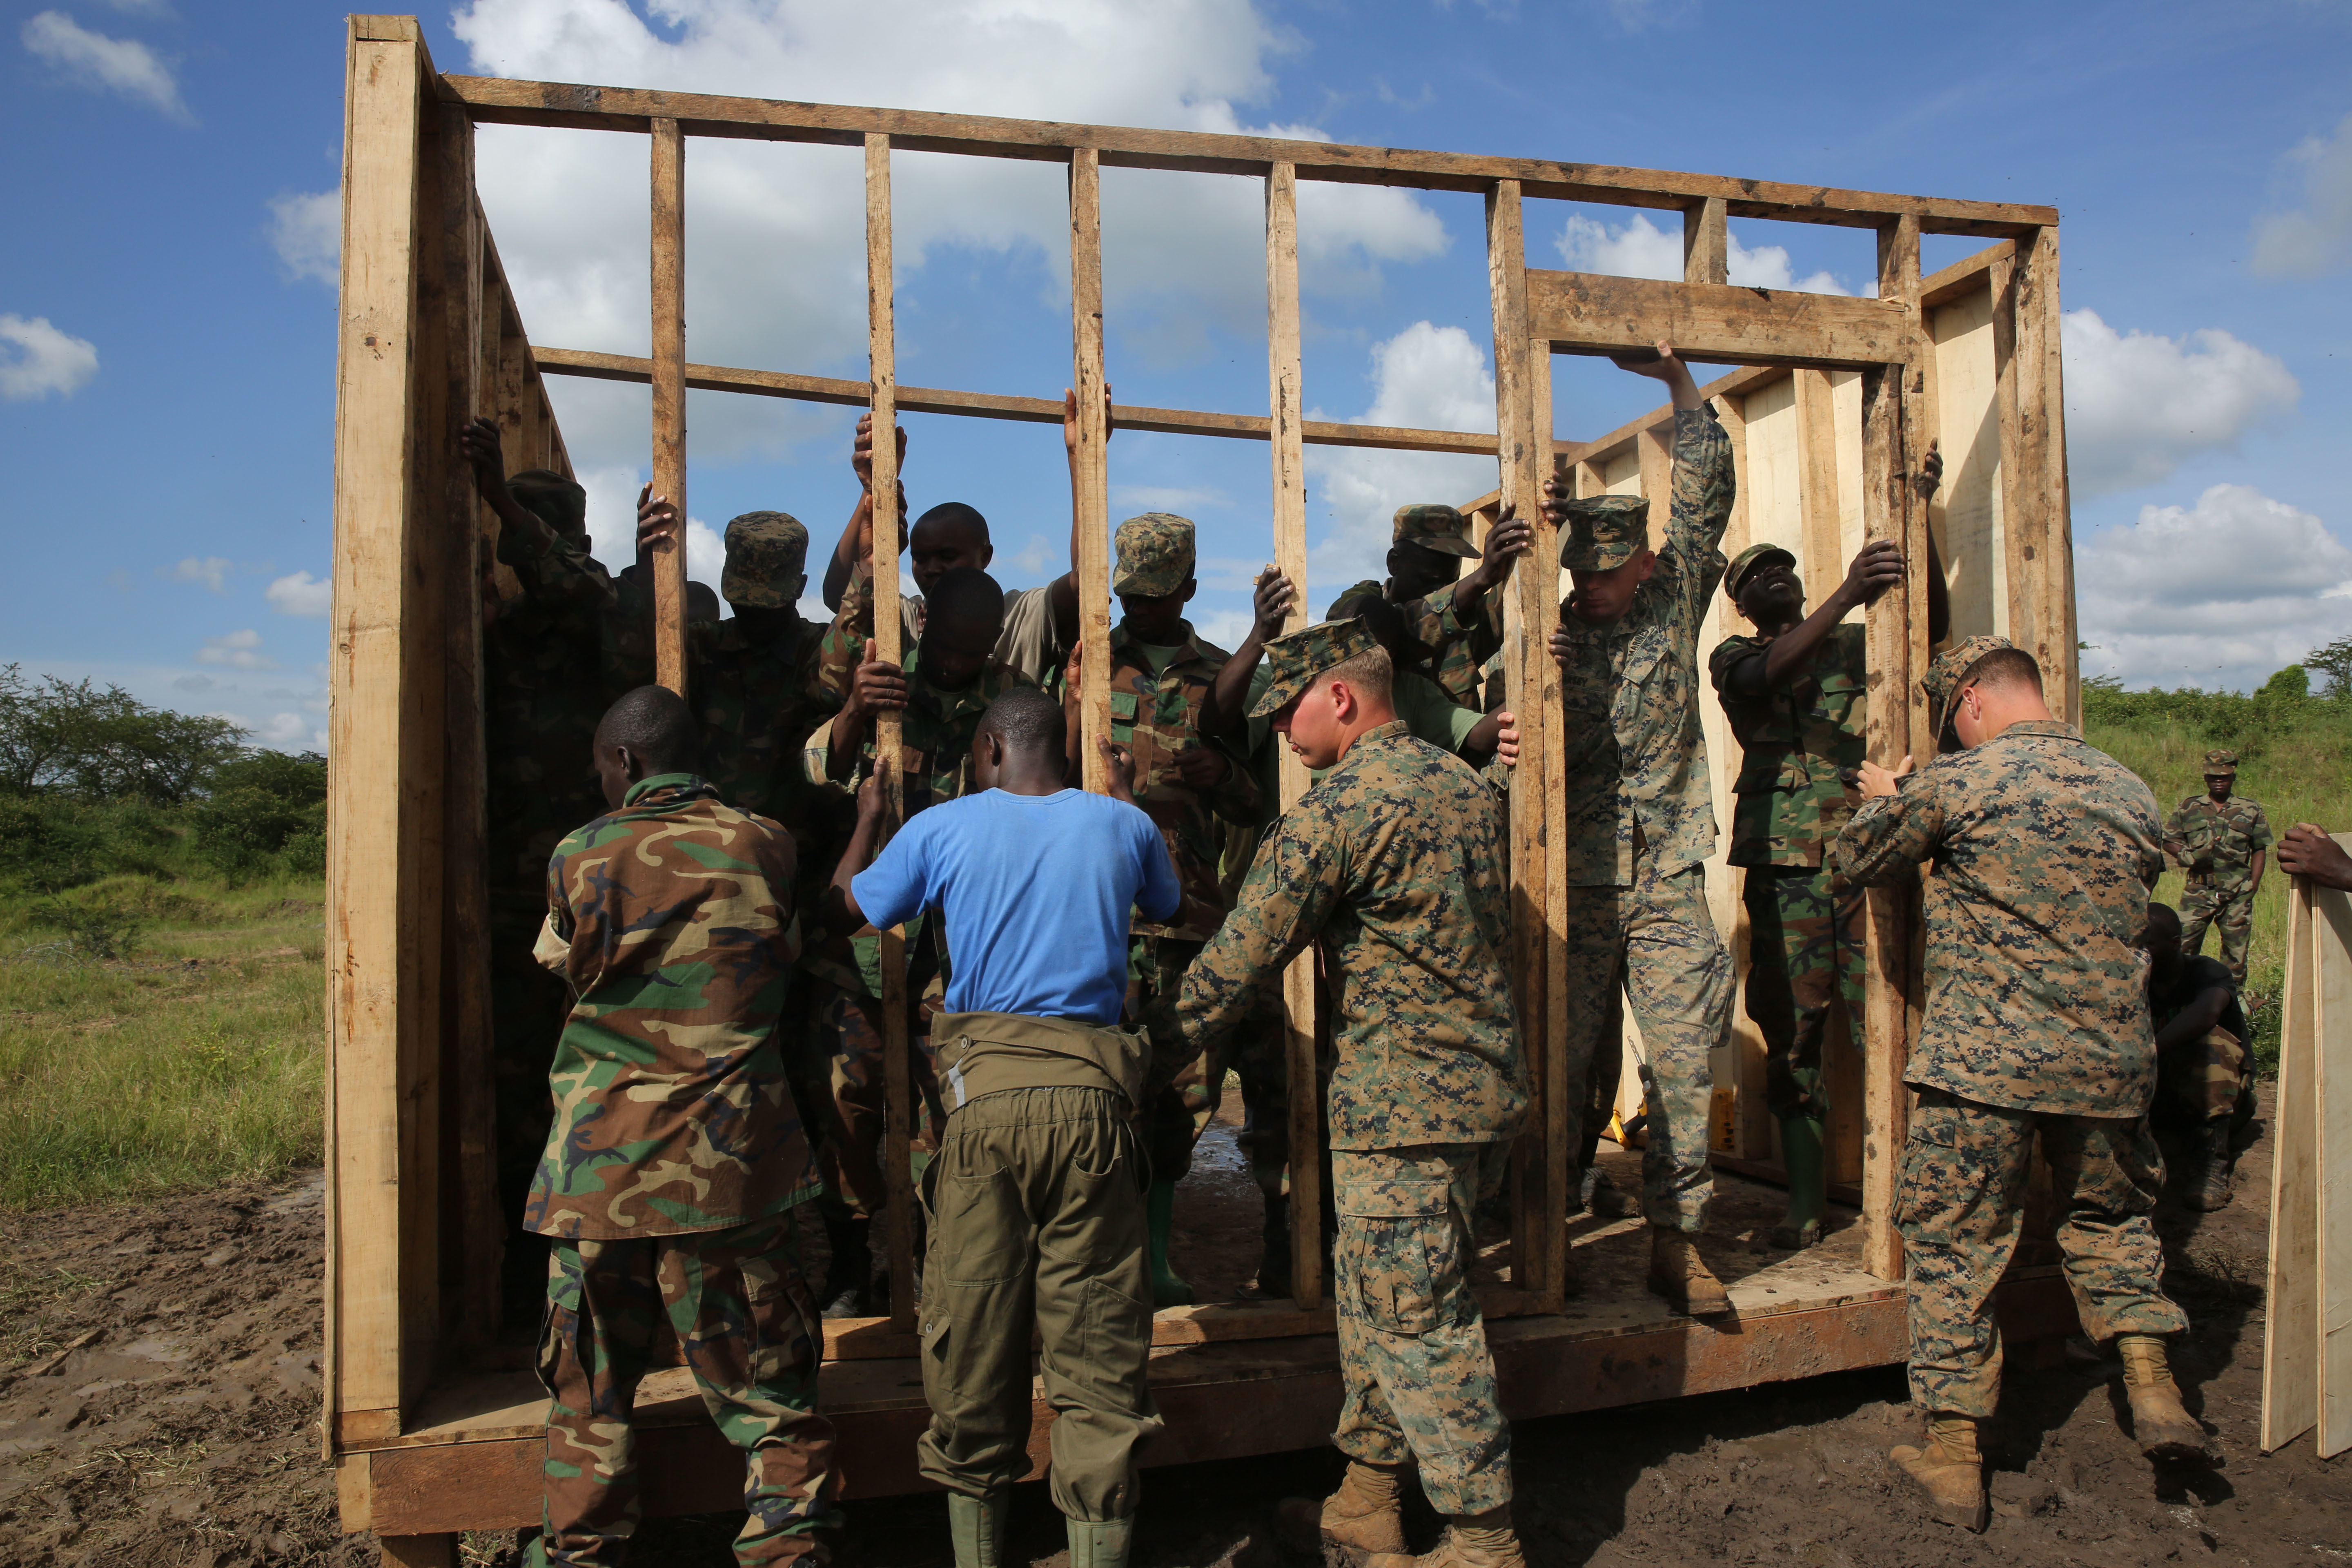 U.S. Marine combat engineers with Special-Purpose Marine Air-Ground Task Force Crisis Response-Africa, assist Uganda People's Defense Force soldiers nail in one of the wall frames during a civil engineering exercise at Camp Singo, Nov. 19, 2015. The exercise helps the partner nations fortify their civil engineering skills while strengthening the bond between the two. (U.S. Marine Corps photo by Cpl. Olivia McDonald/Released)